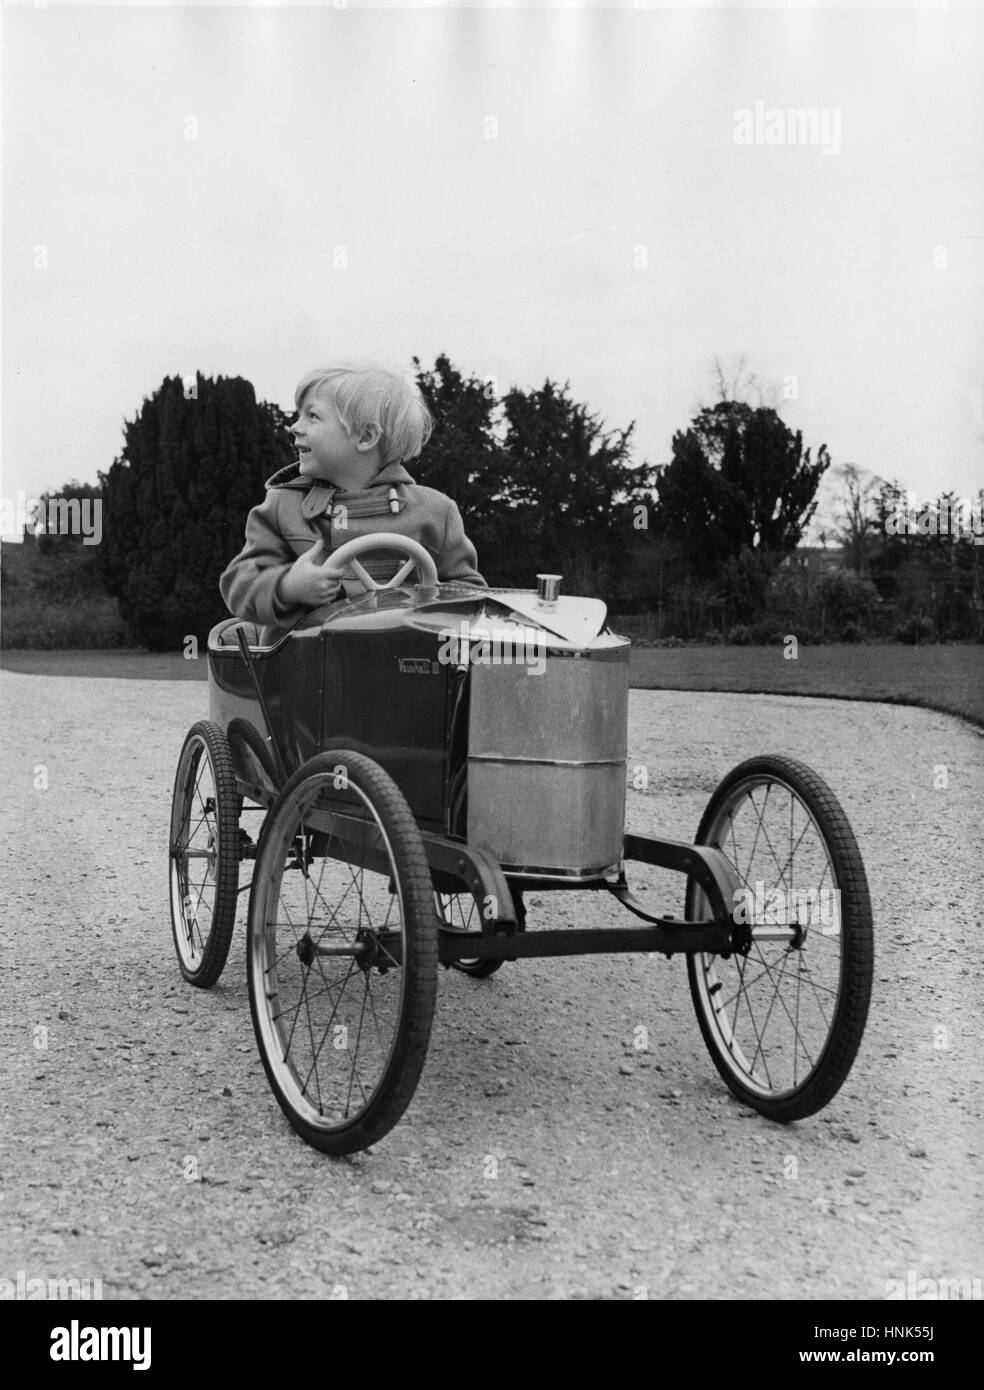 Ralph Montagu in Vauxhall pedal car (now Lord Montagu) - Stock Image